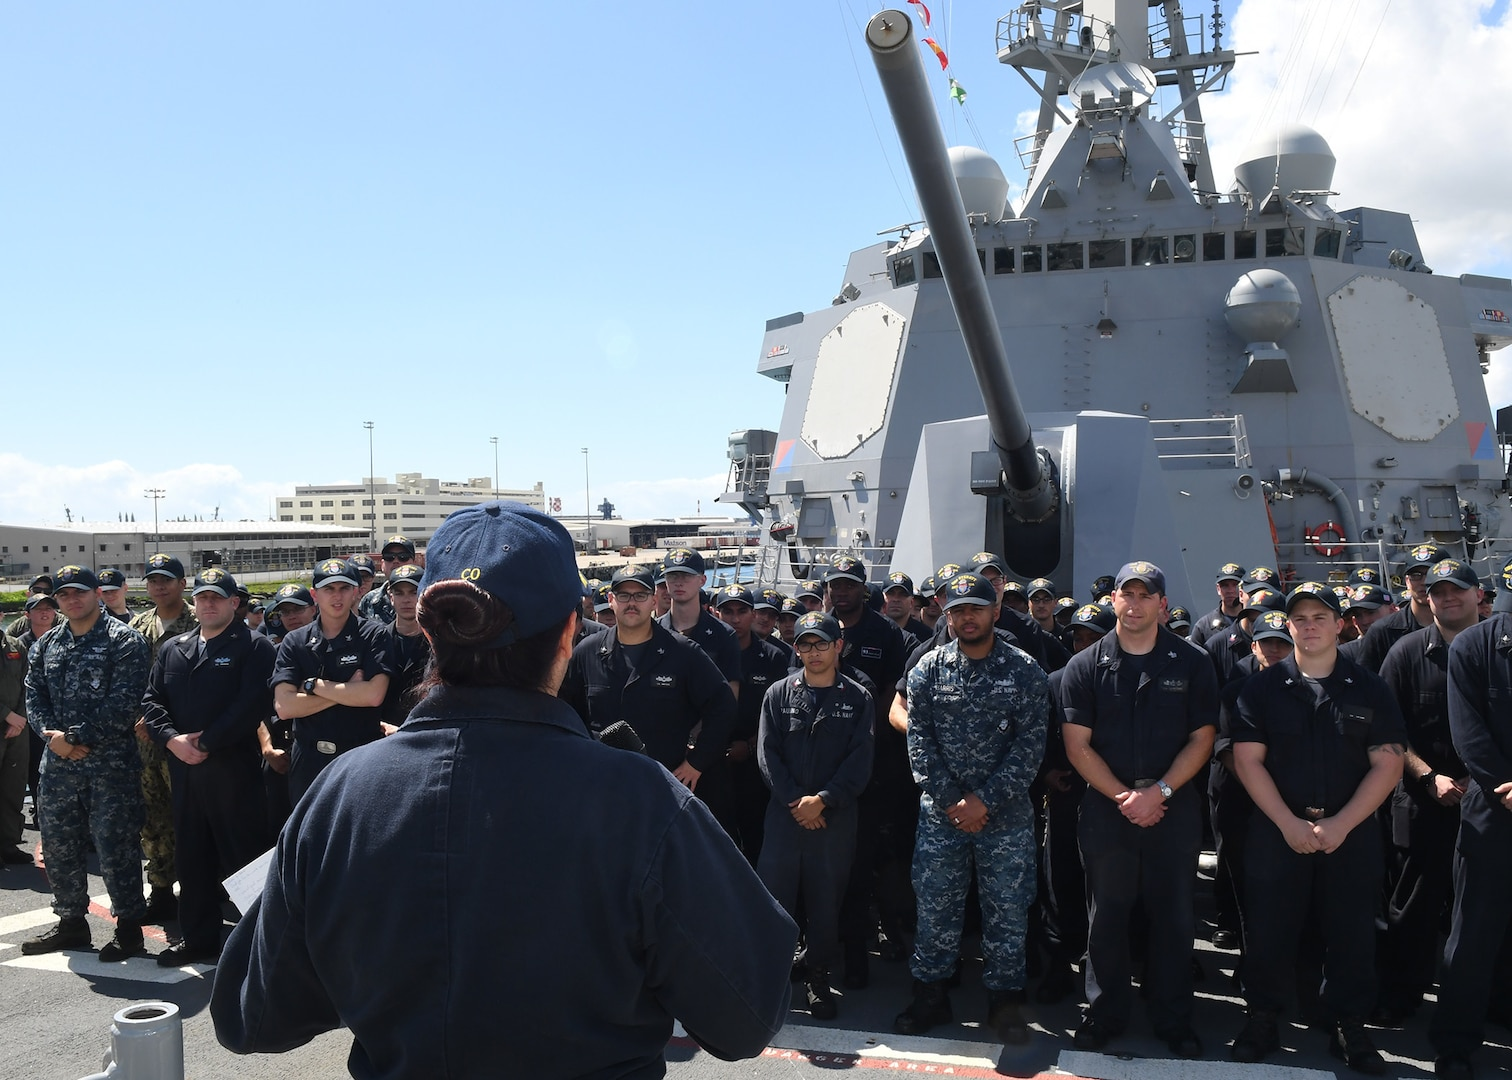 Arleigh Burke-class guided-missile destroyer USS Sterett (DDG 104) Commanding Officer Cmdr. Claudine Caluori addresses the crew during an all-hands call. Sterett is on a scheduled deployment to conduct operations in the Indo-Pacific region. It will also support the Wasp Expeditionary Strike Group (ESG) in order to advance U.S. Pacific Fleet's Up-Gunned ESG concept and will train with forward-deployed amphibious ships across all mission areas.